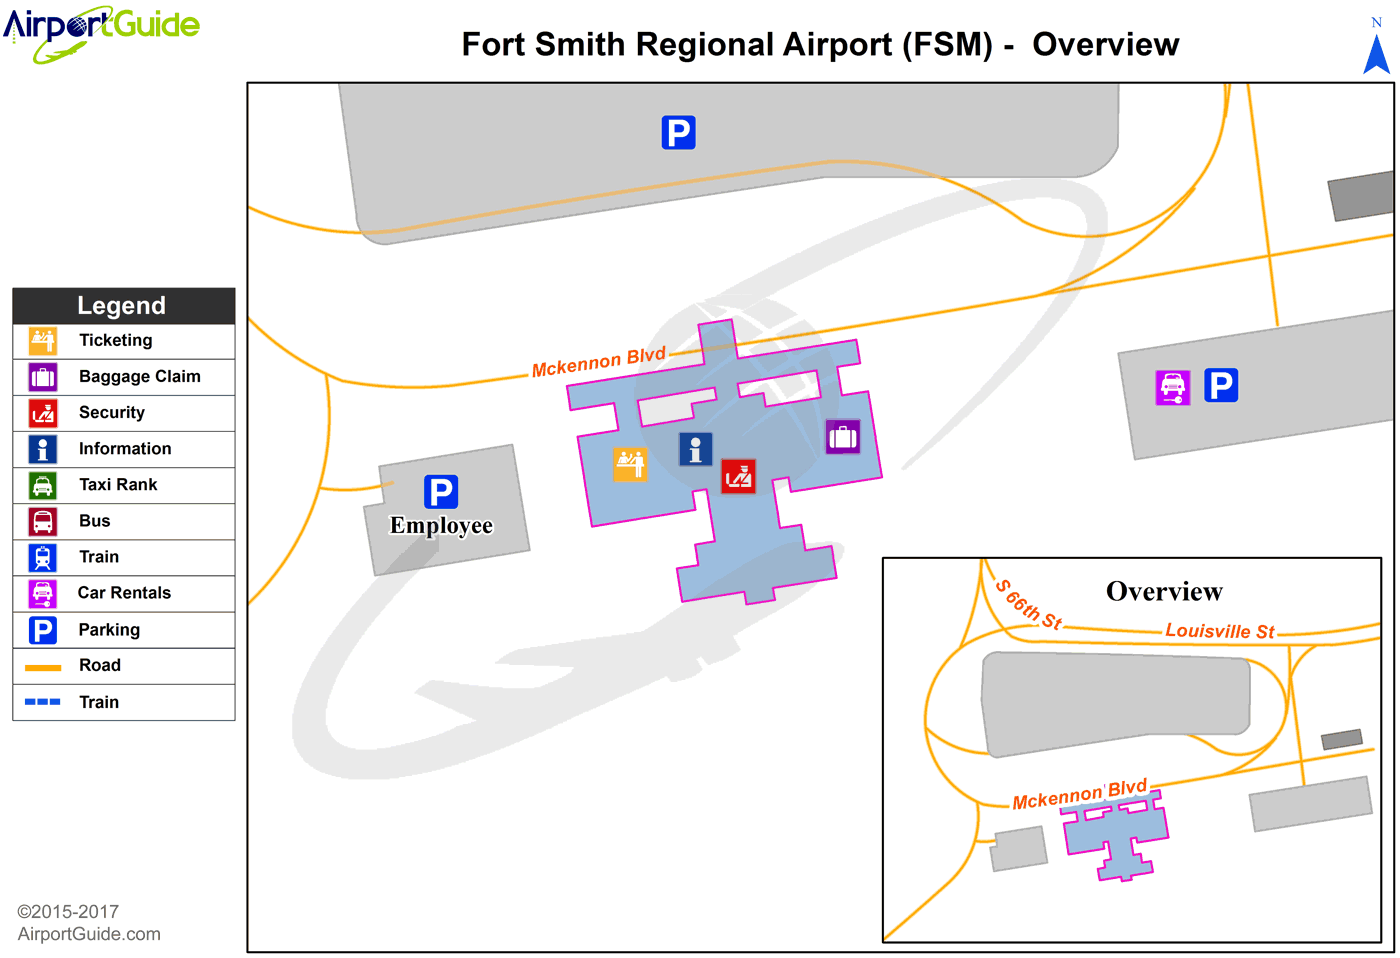 Fort Smith - Fort Smith Regional (FSM) Airport Terminal Map - Overview